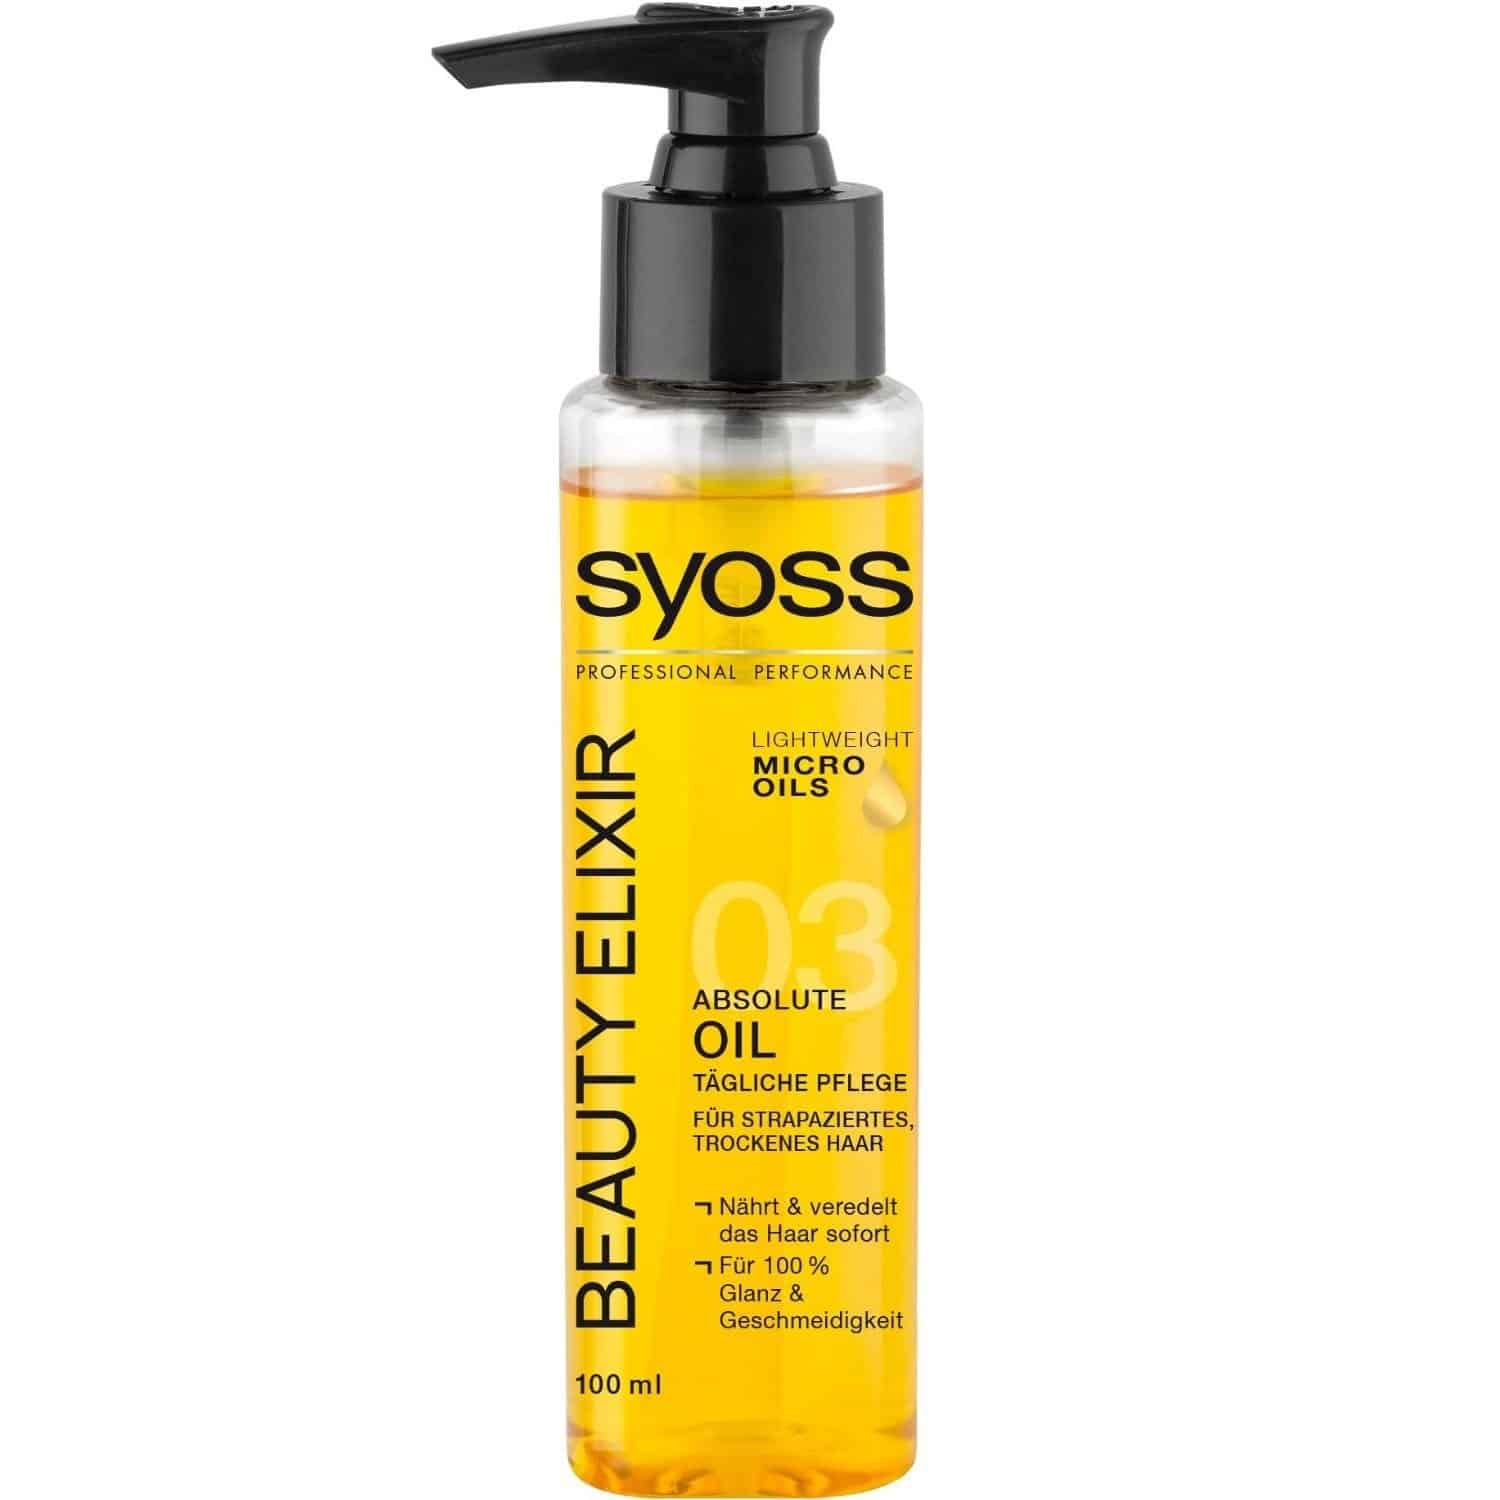 Syoss-Beauty-Elixir-Absolute-Oil-Treatment